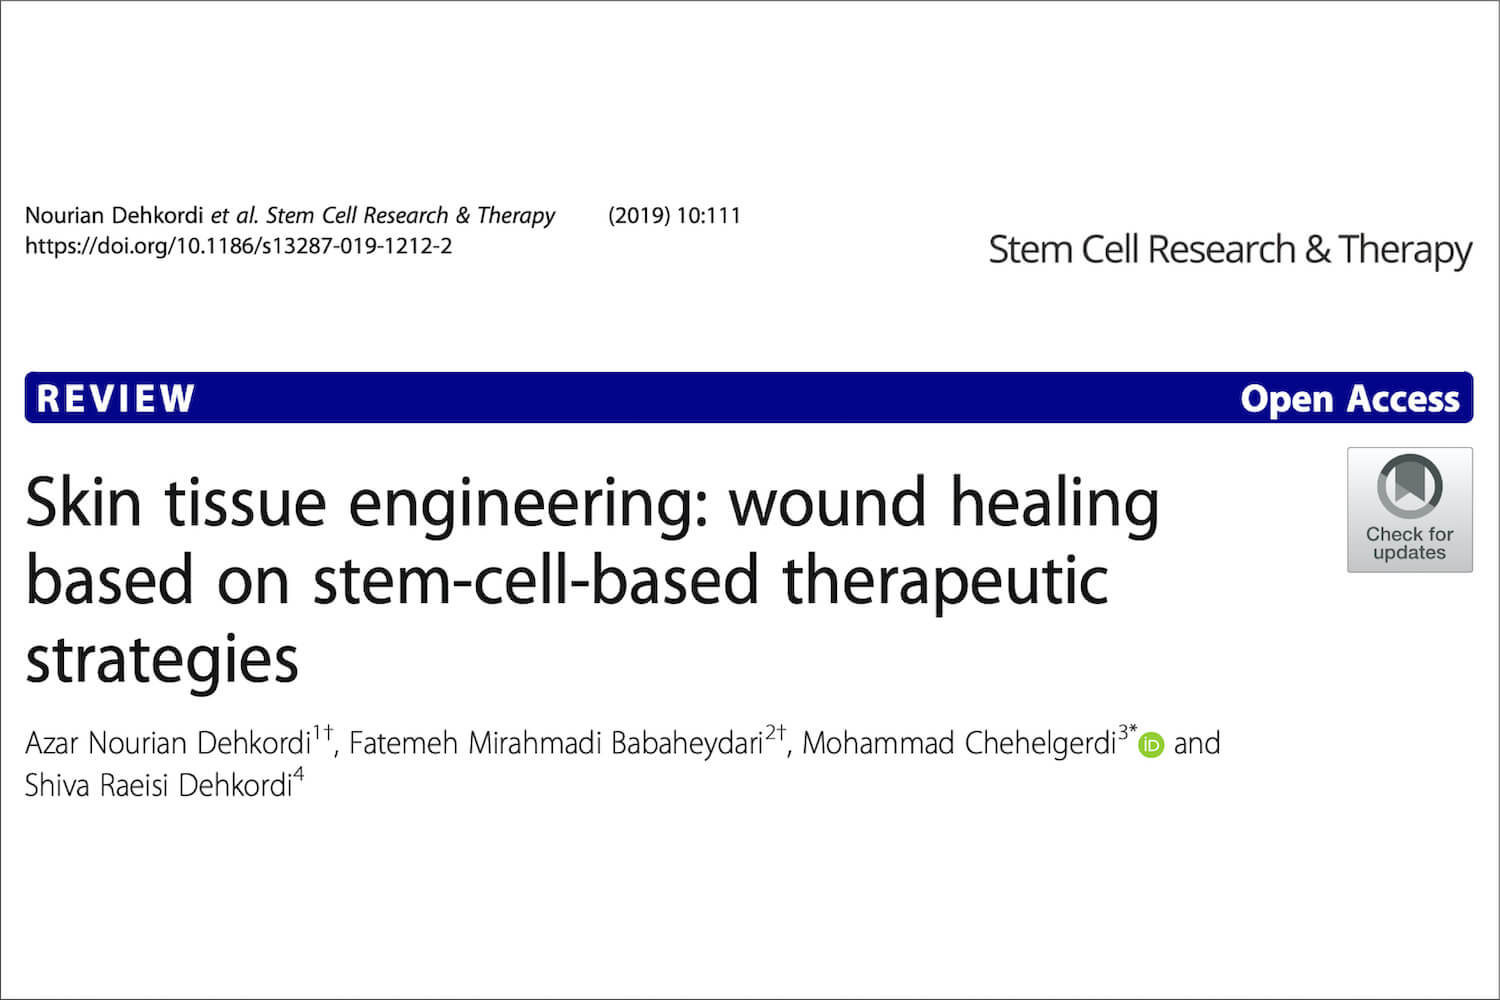 Skin tissue engineering - stem cell and wound healing